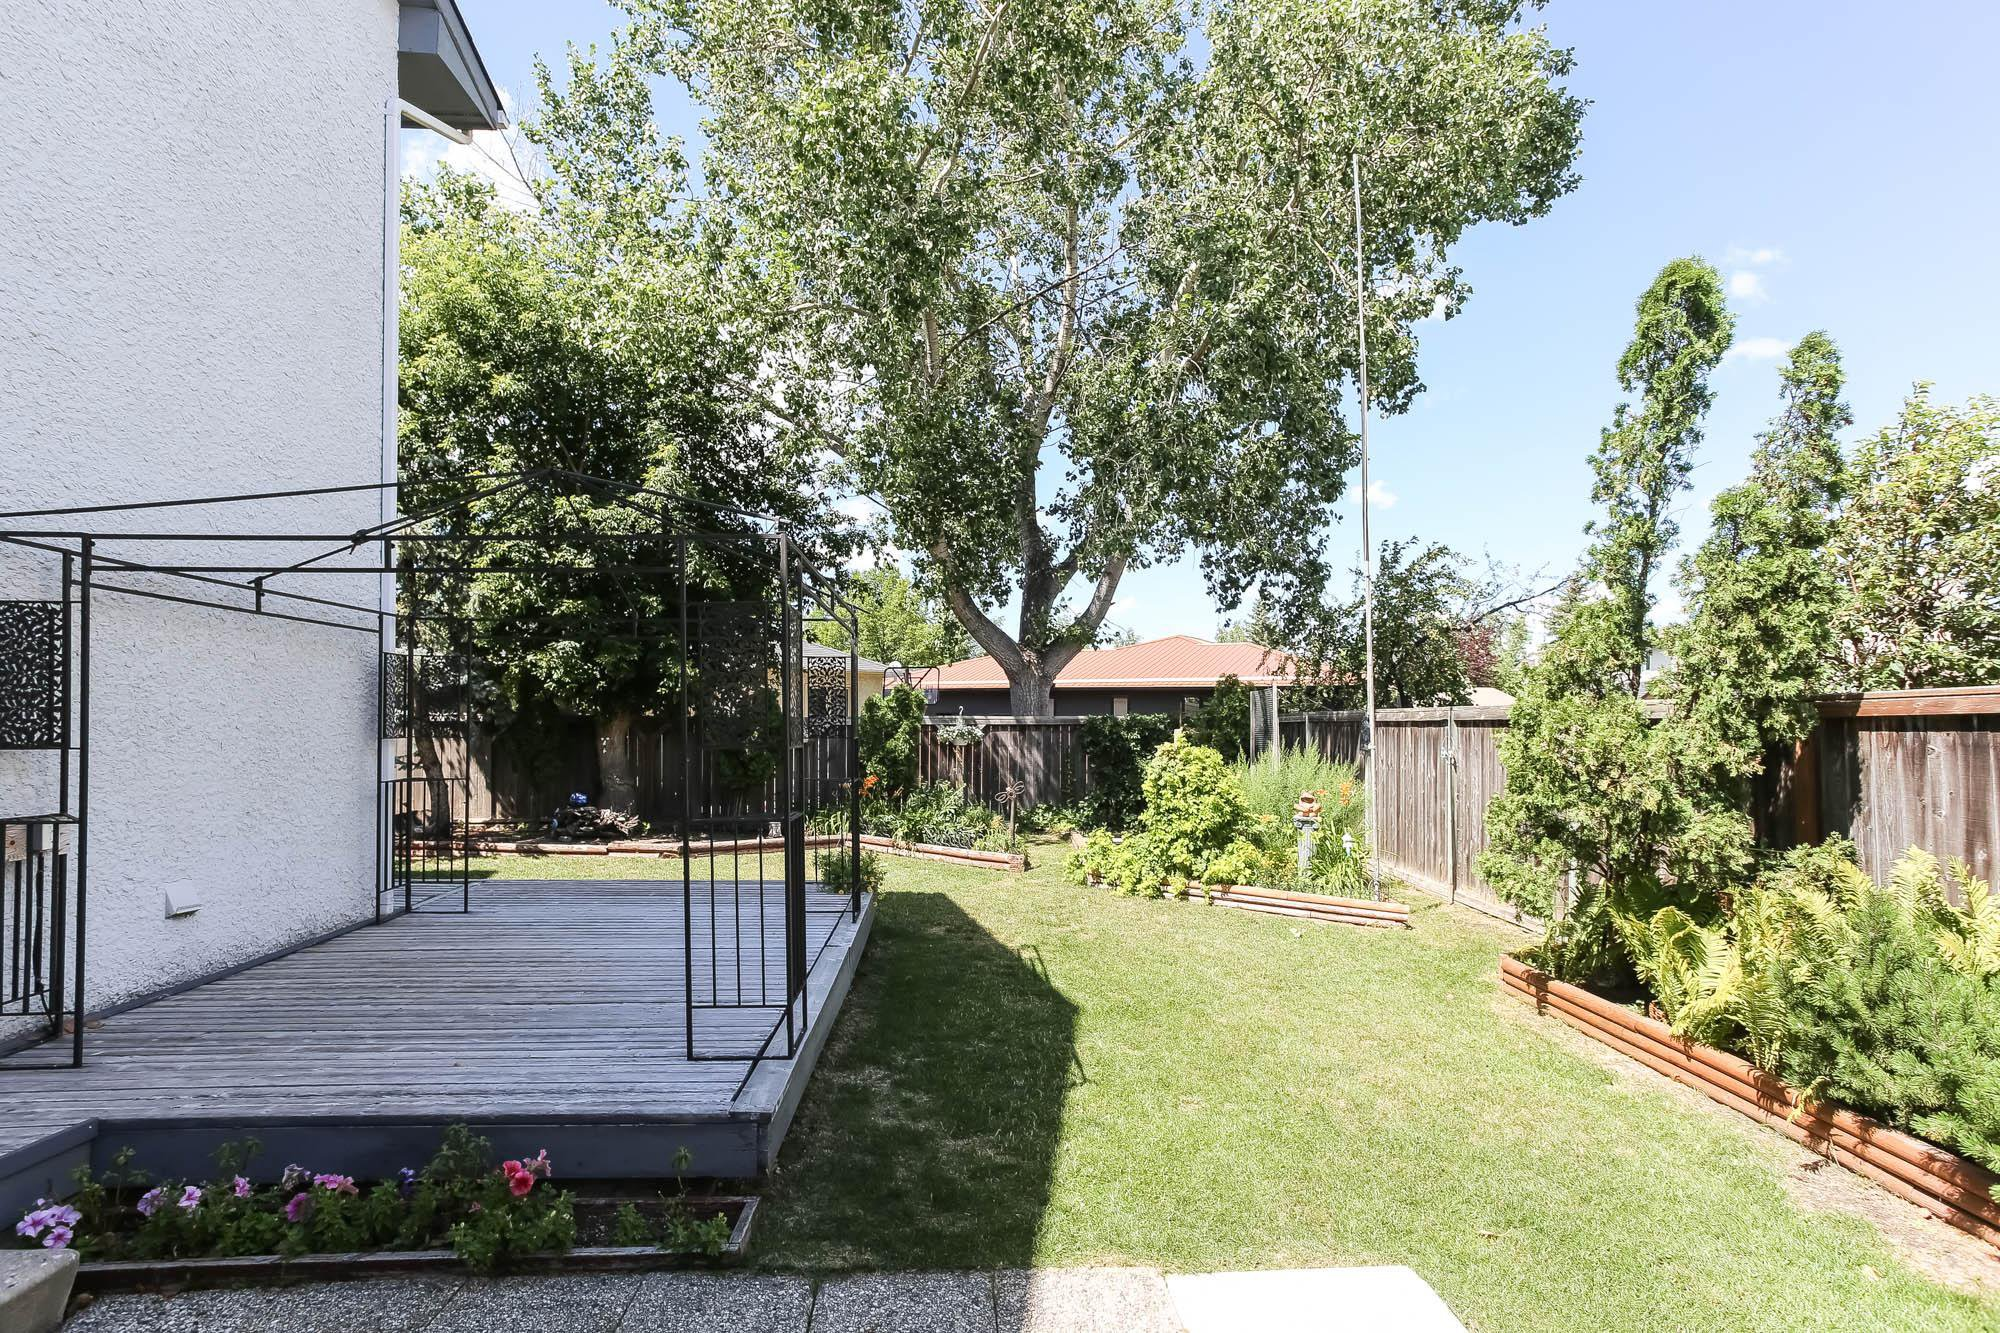 Photo 25: Photos: 14 Torrington Road in Winnipeg: Whyte Ridge Single Family Detached for sale (1P)  : MLS®# 202017383